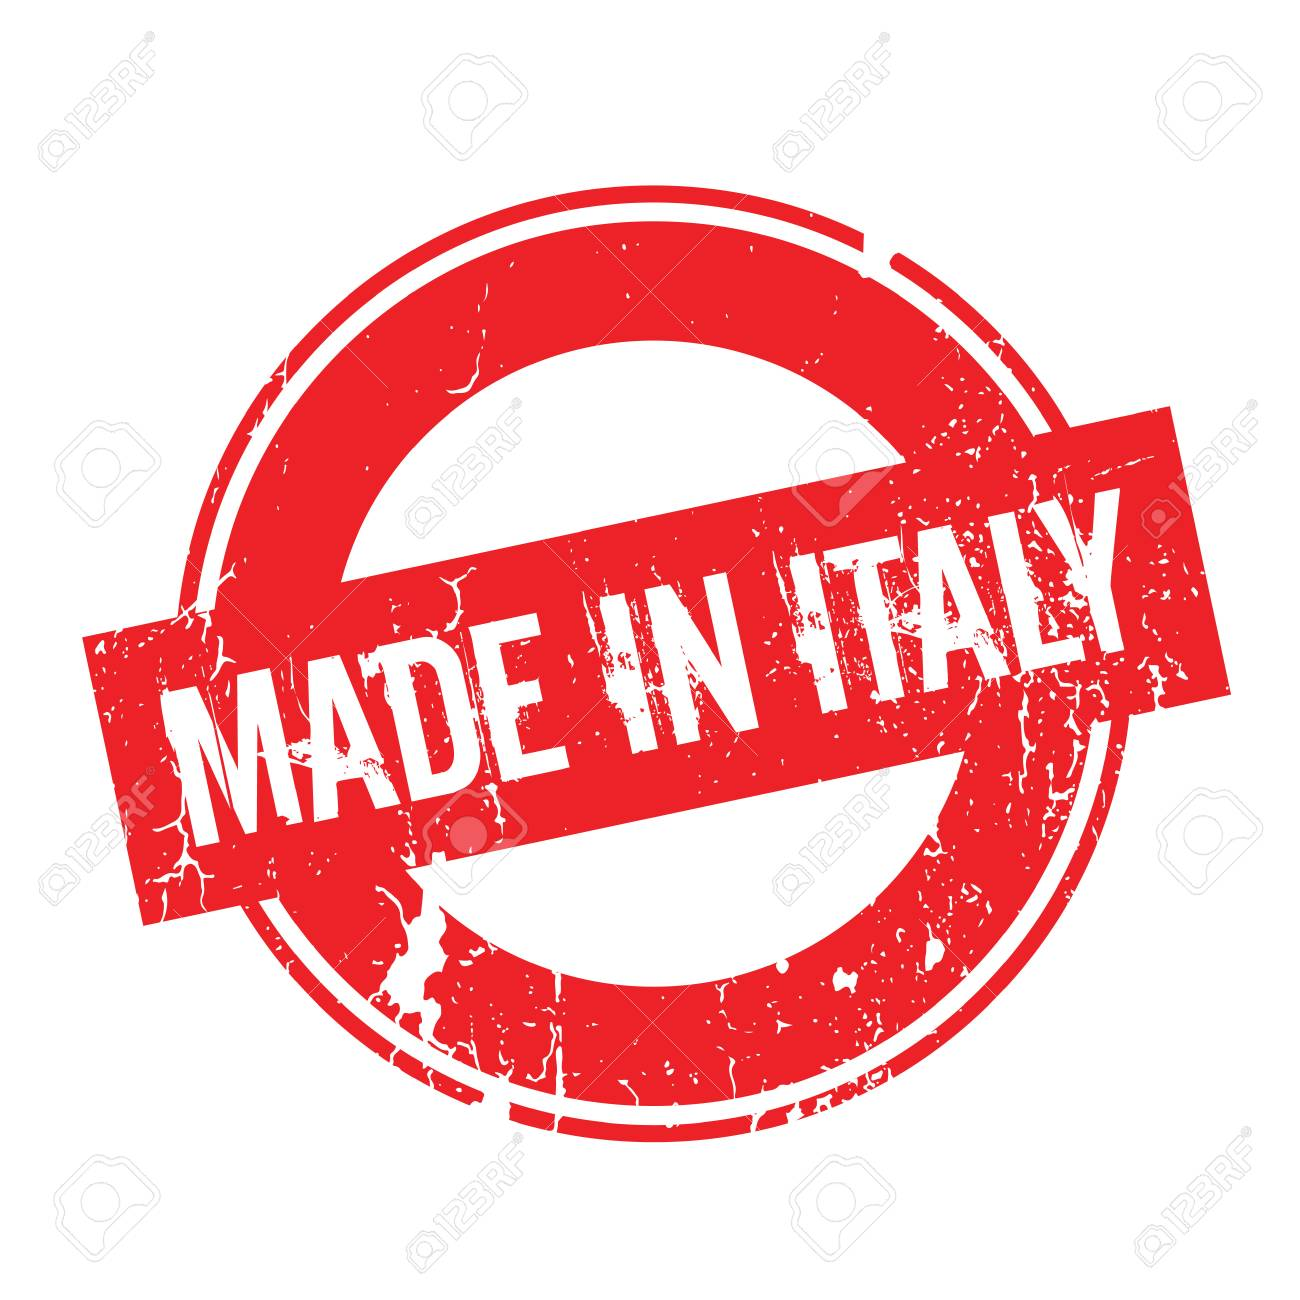 5f36cdc35e Made In Italy rubber stamp Stock Vector - 78174145